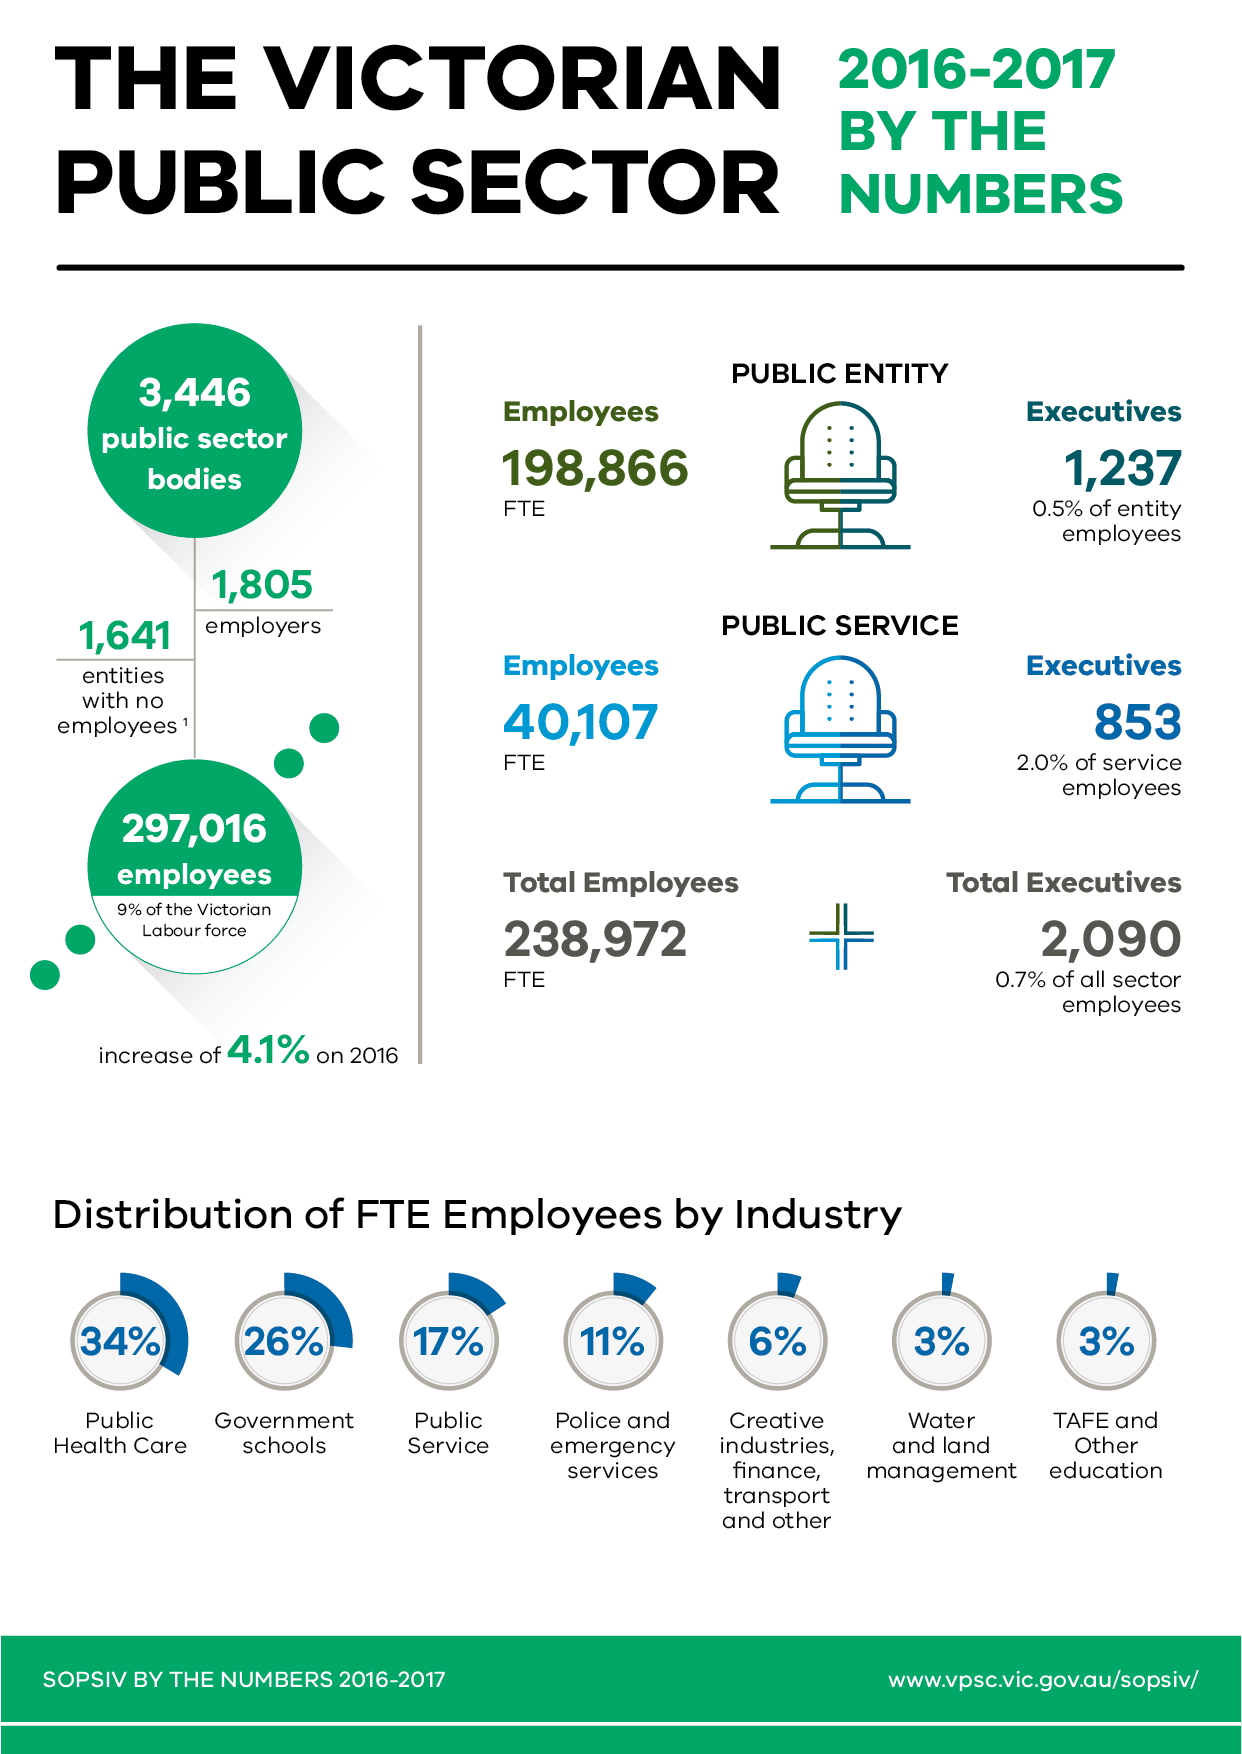 Page 1 of 5 pages of infographic representations of the statistical highlights from the State of the Public Sector in Victoria 2016-2017 report.